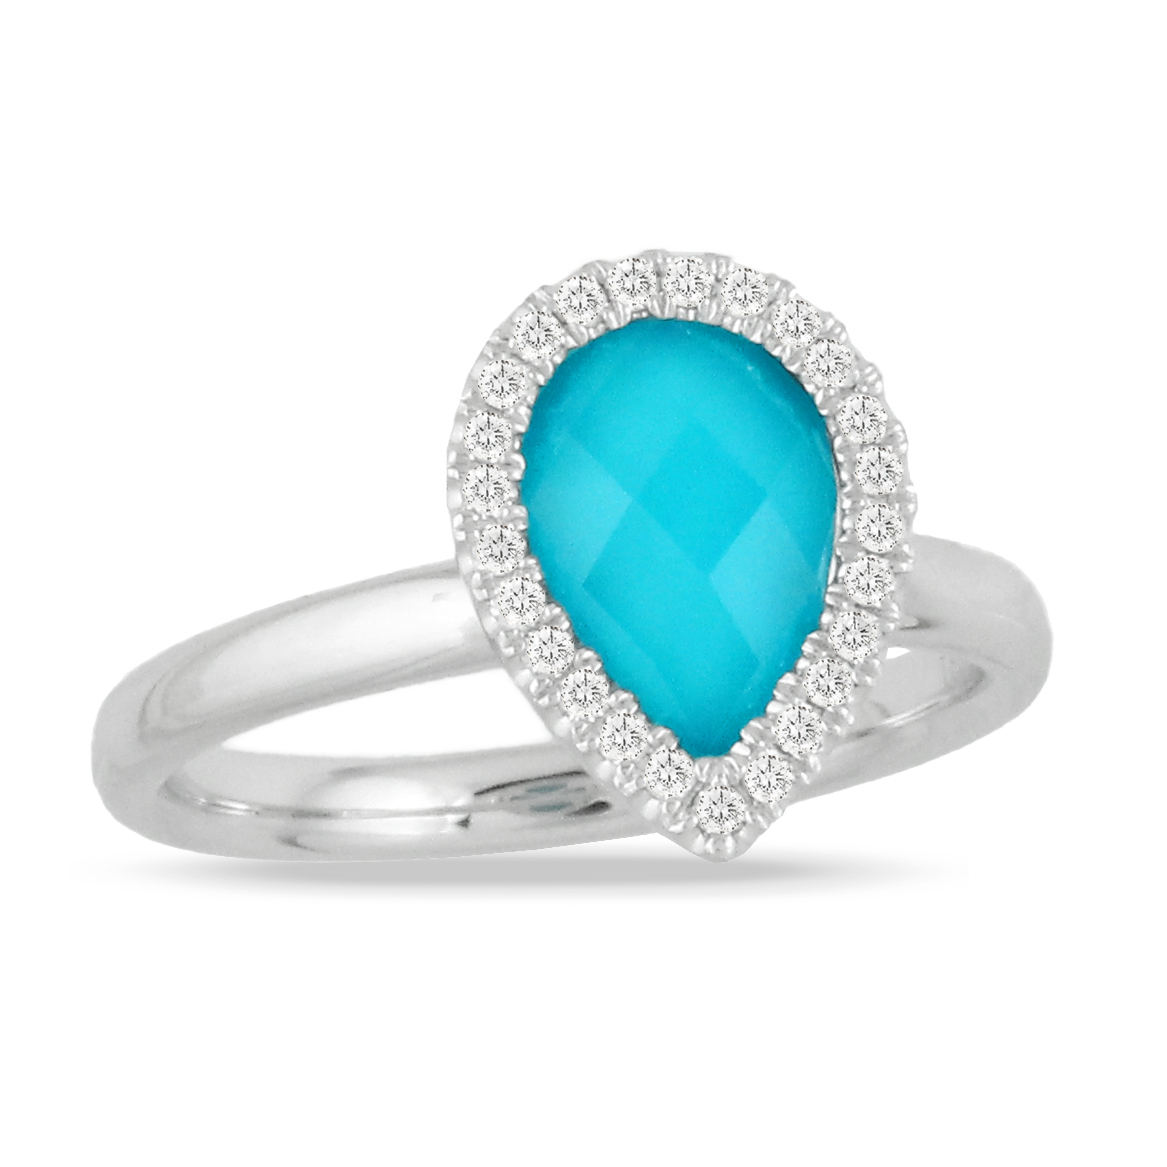 18K White Gold Turquoise Fashion Ring by Dove